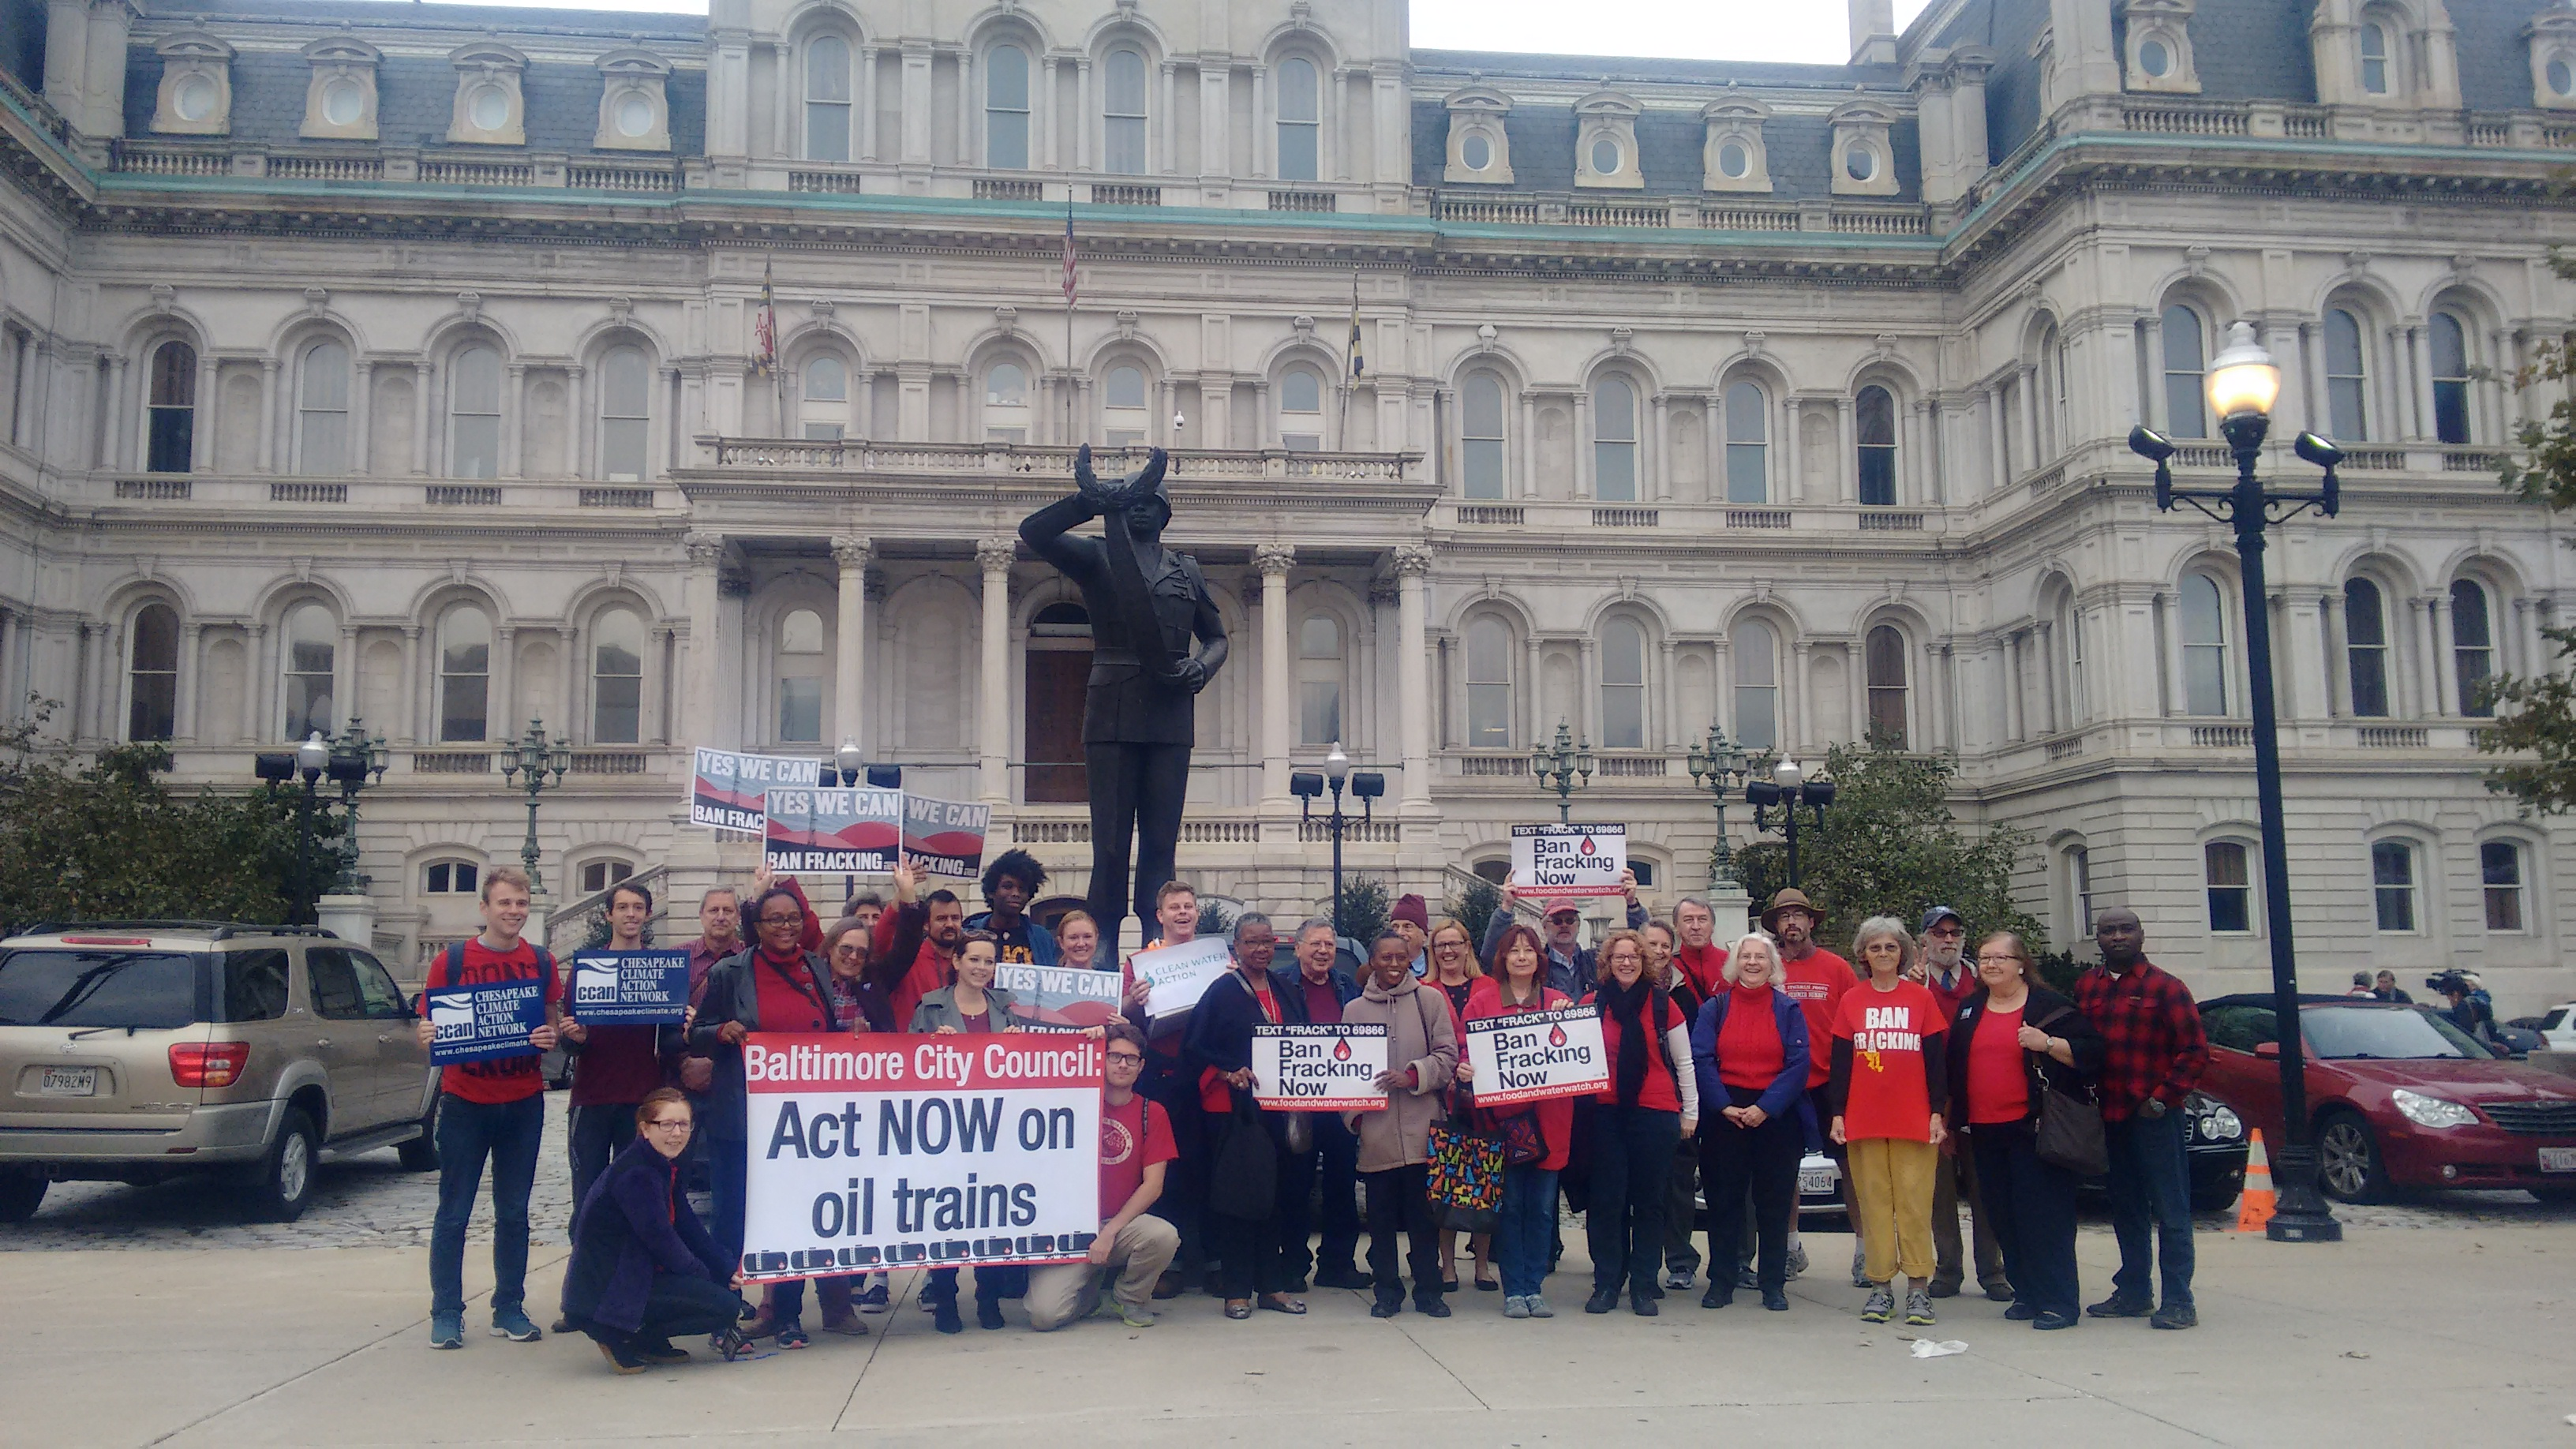 Over 30 Baltimore residents outside of City Hall wearing red in support of the Oil Trains Ordinance